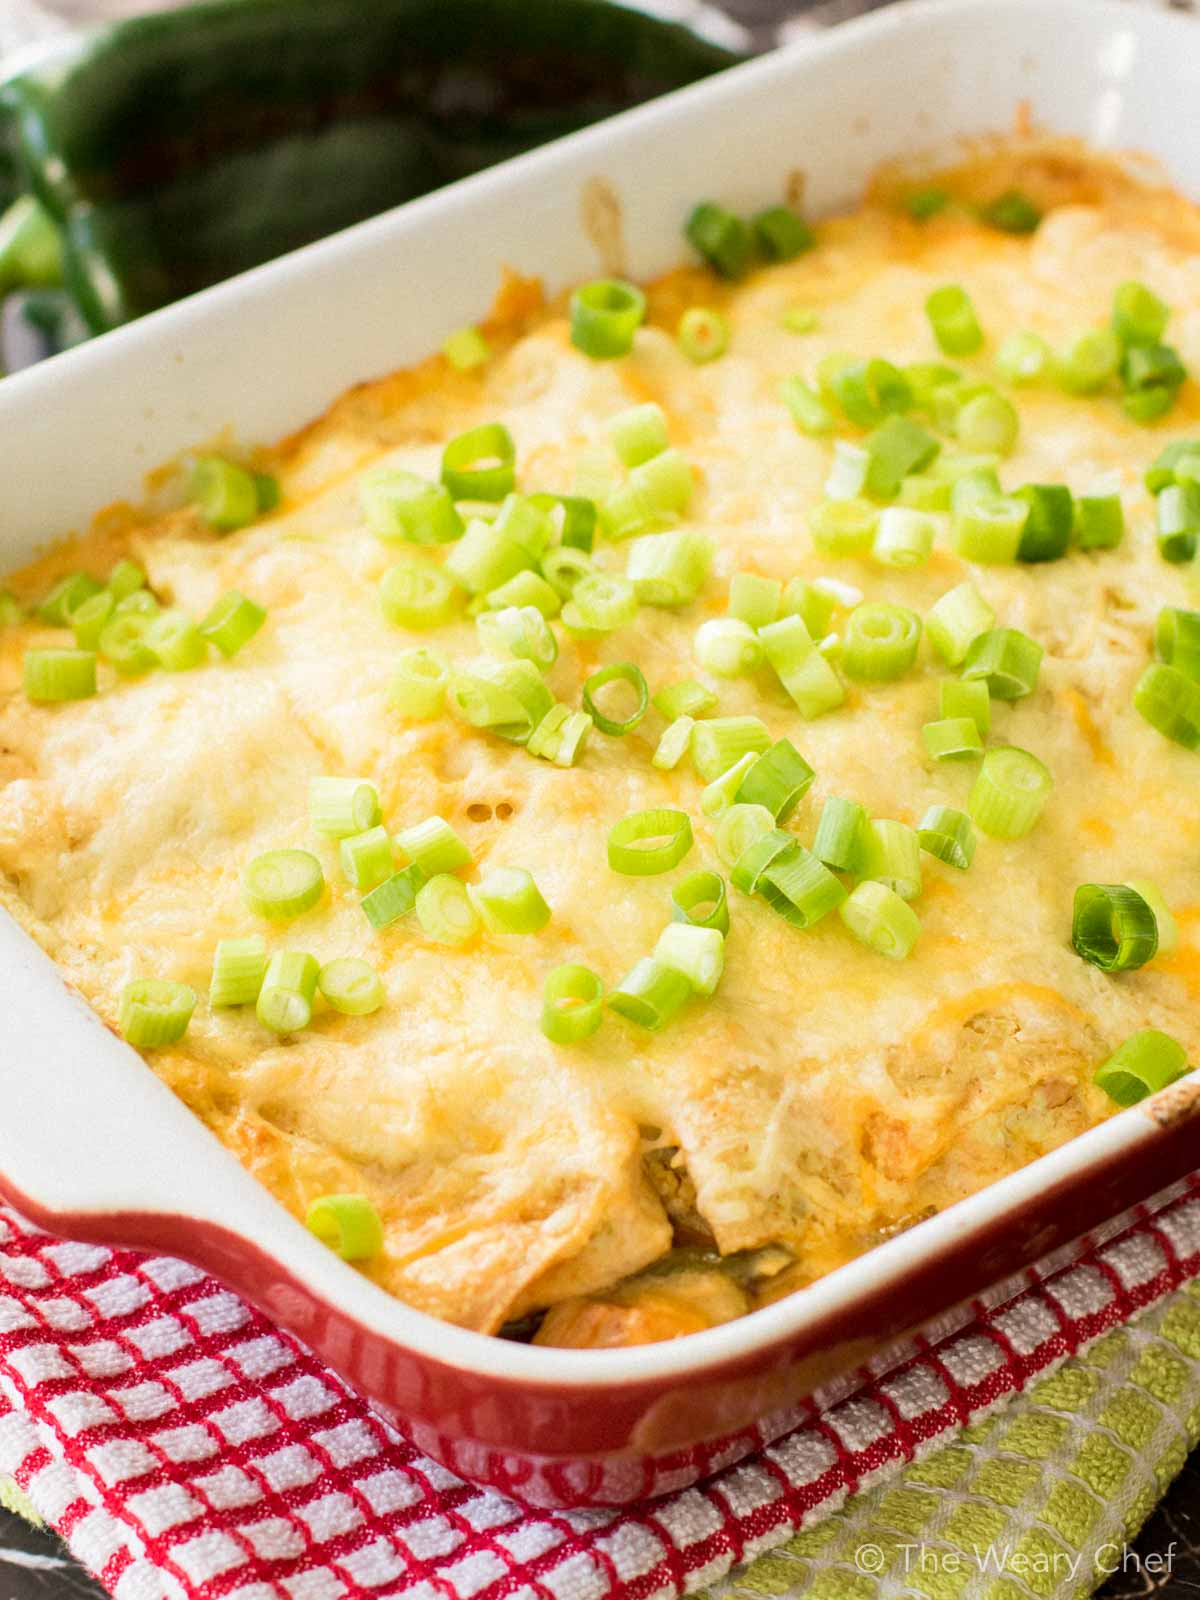 This layered chile relleno casserole is the definition of comfort food. Plus, it's gluten free!